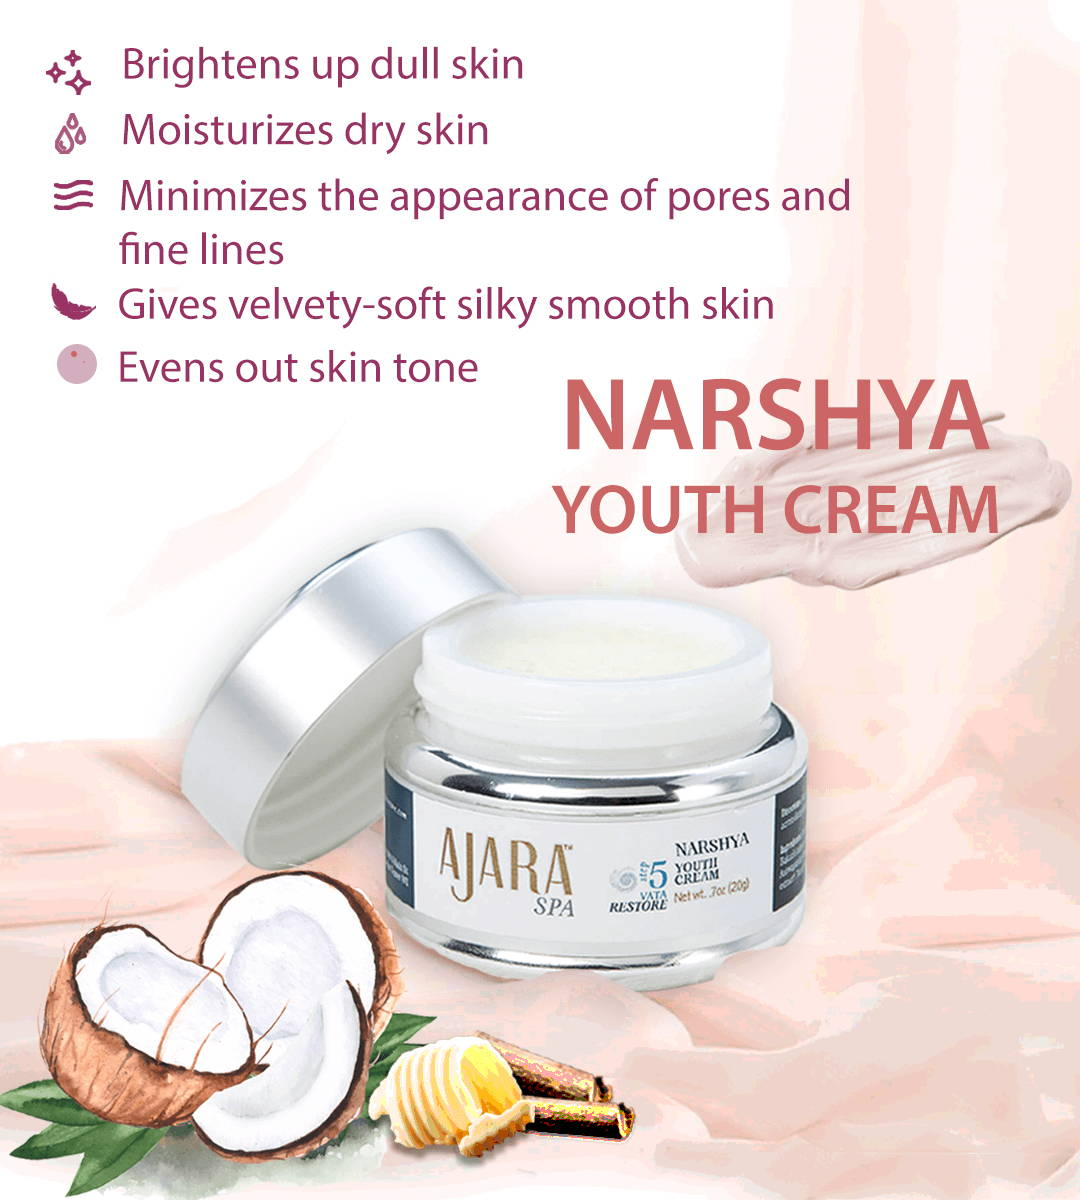 Benefits of 5 products in 1 with Narshya Youth Cream